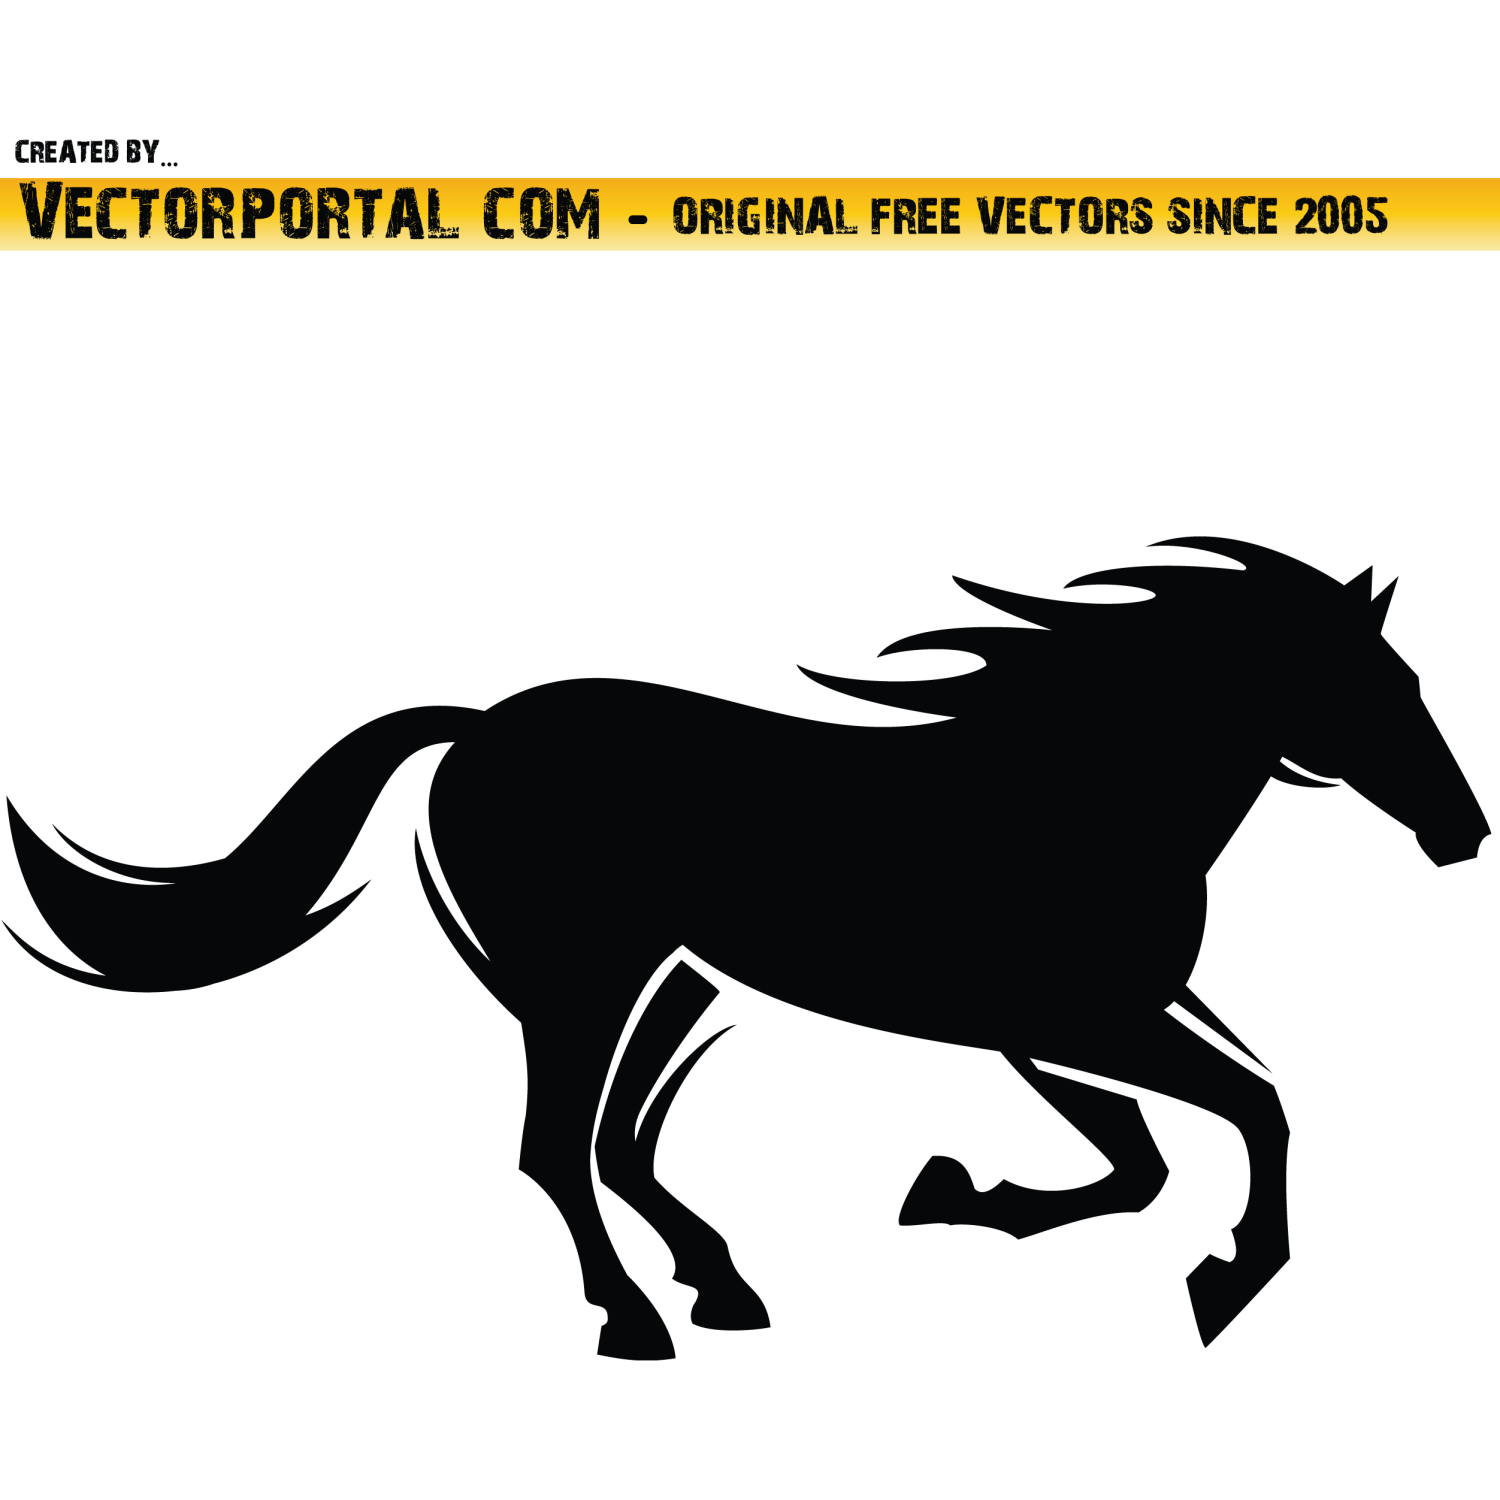 Black horse vector image.